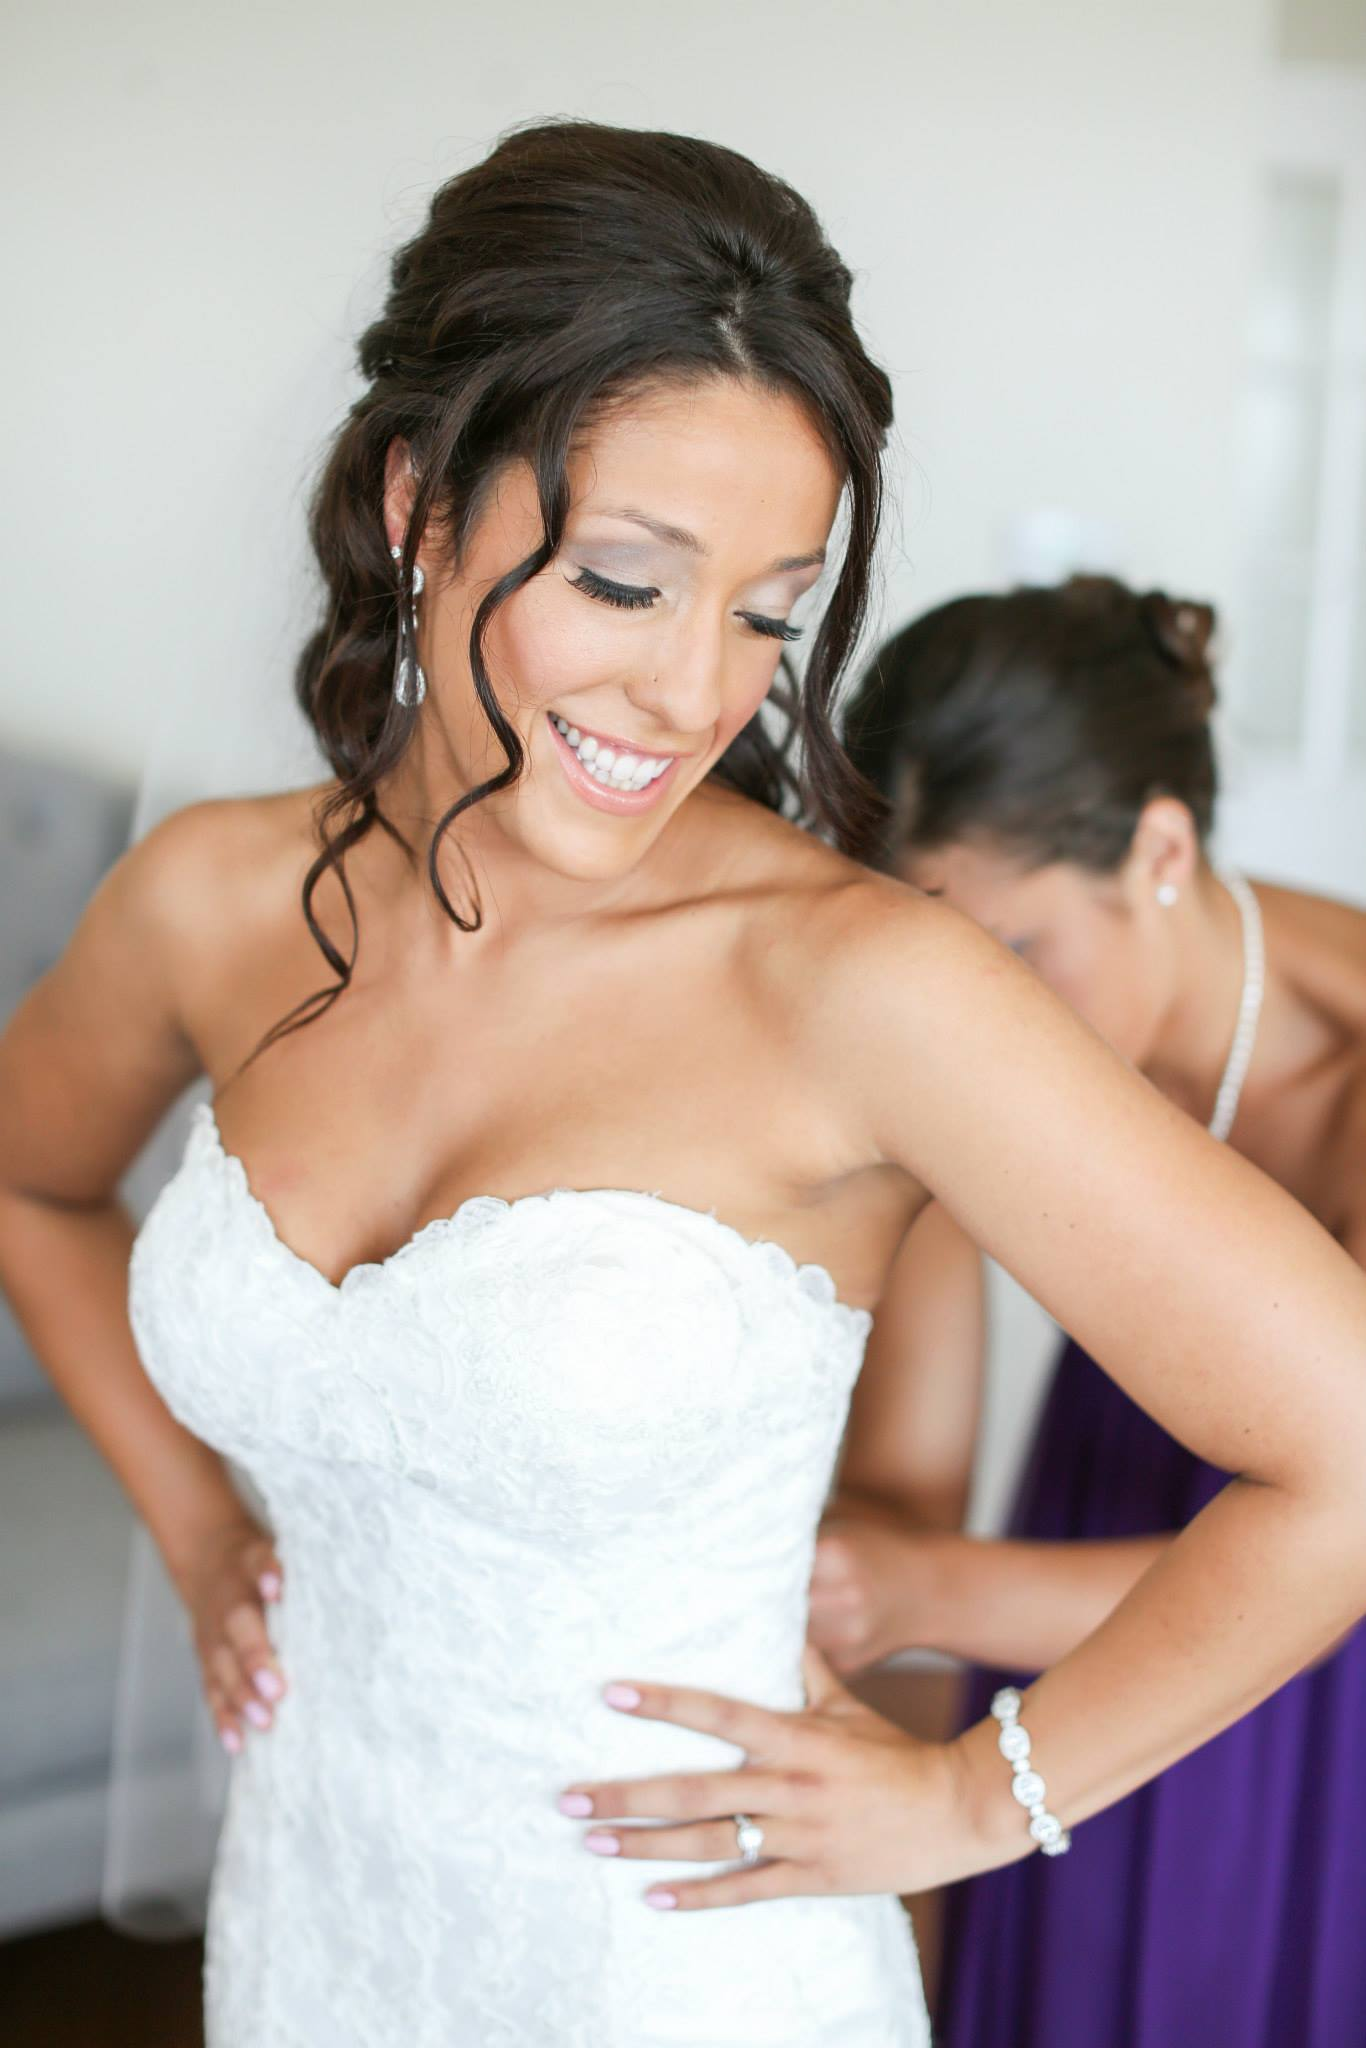 San Diego Weddings | Hotel Del | San Diego Makeup Artist | Sand Diego Hair Artist | Wedding Makeup Artist |